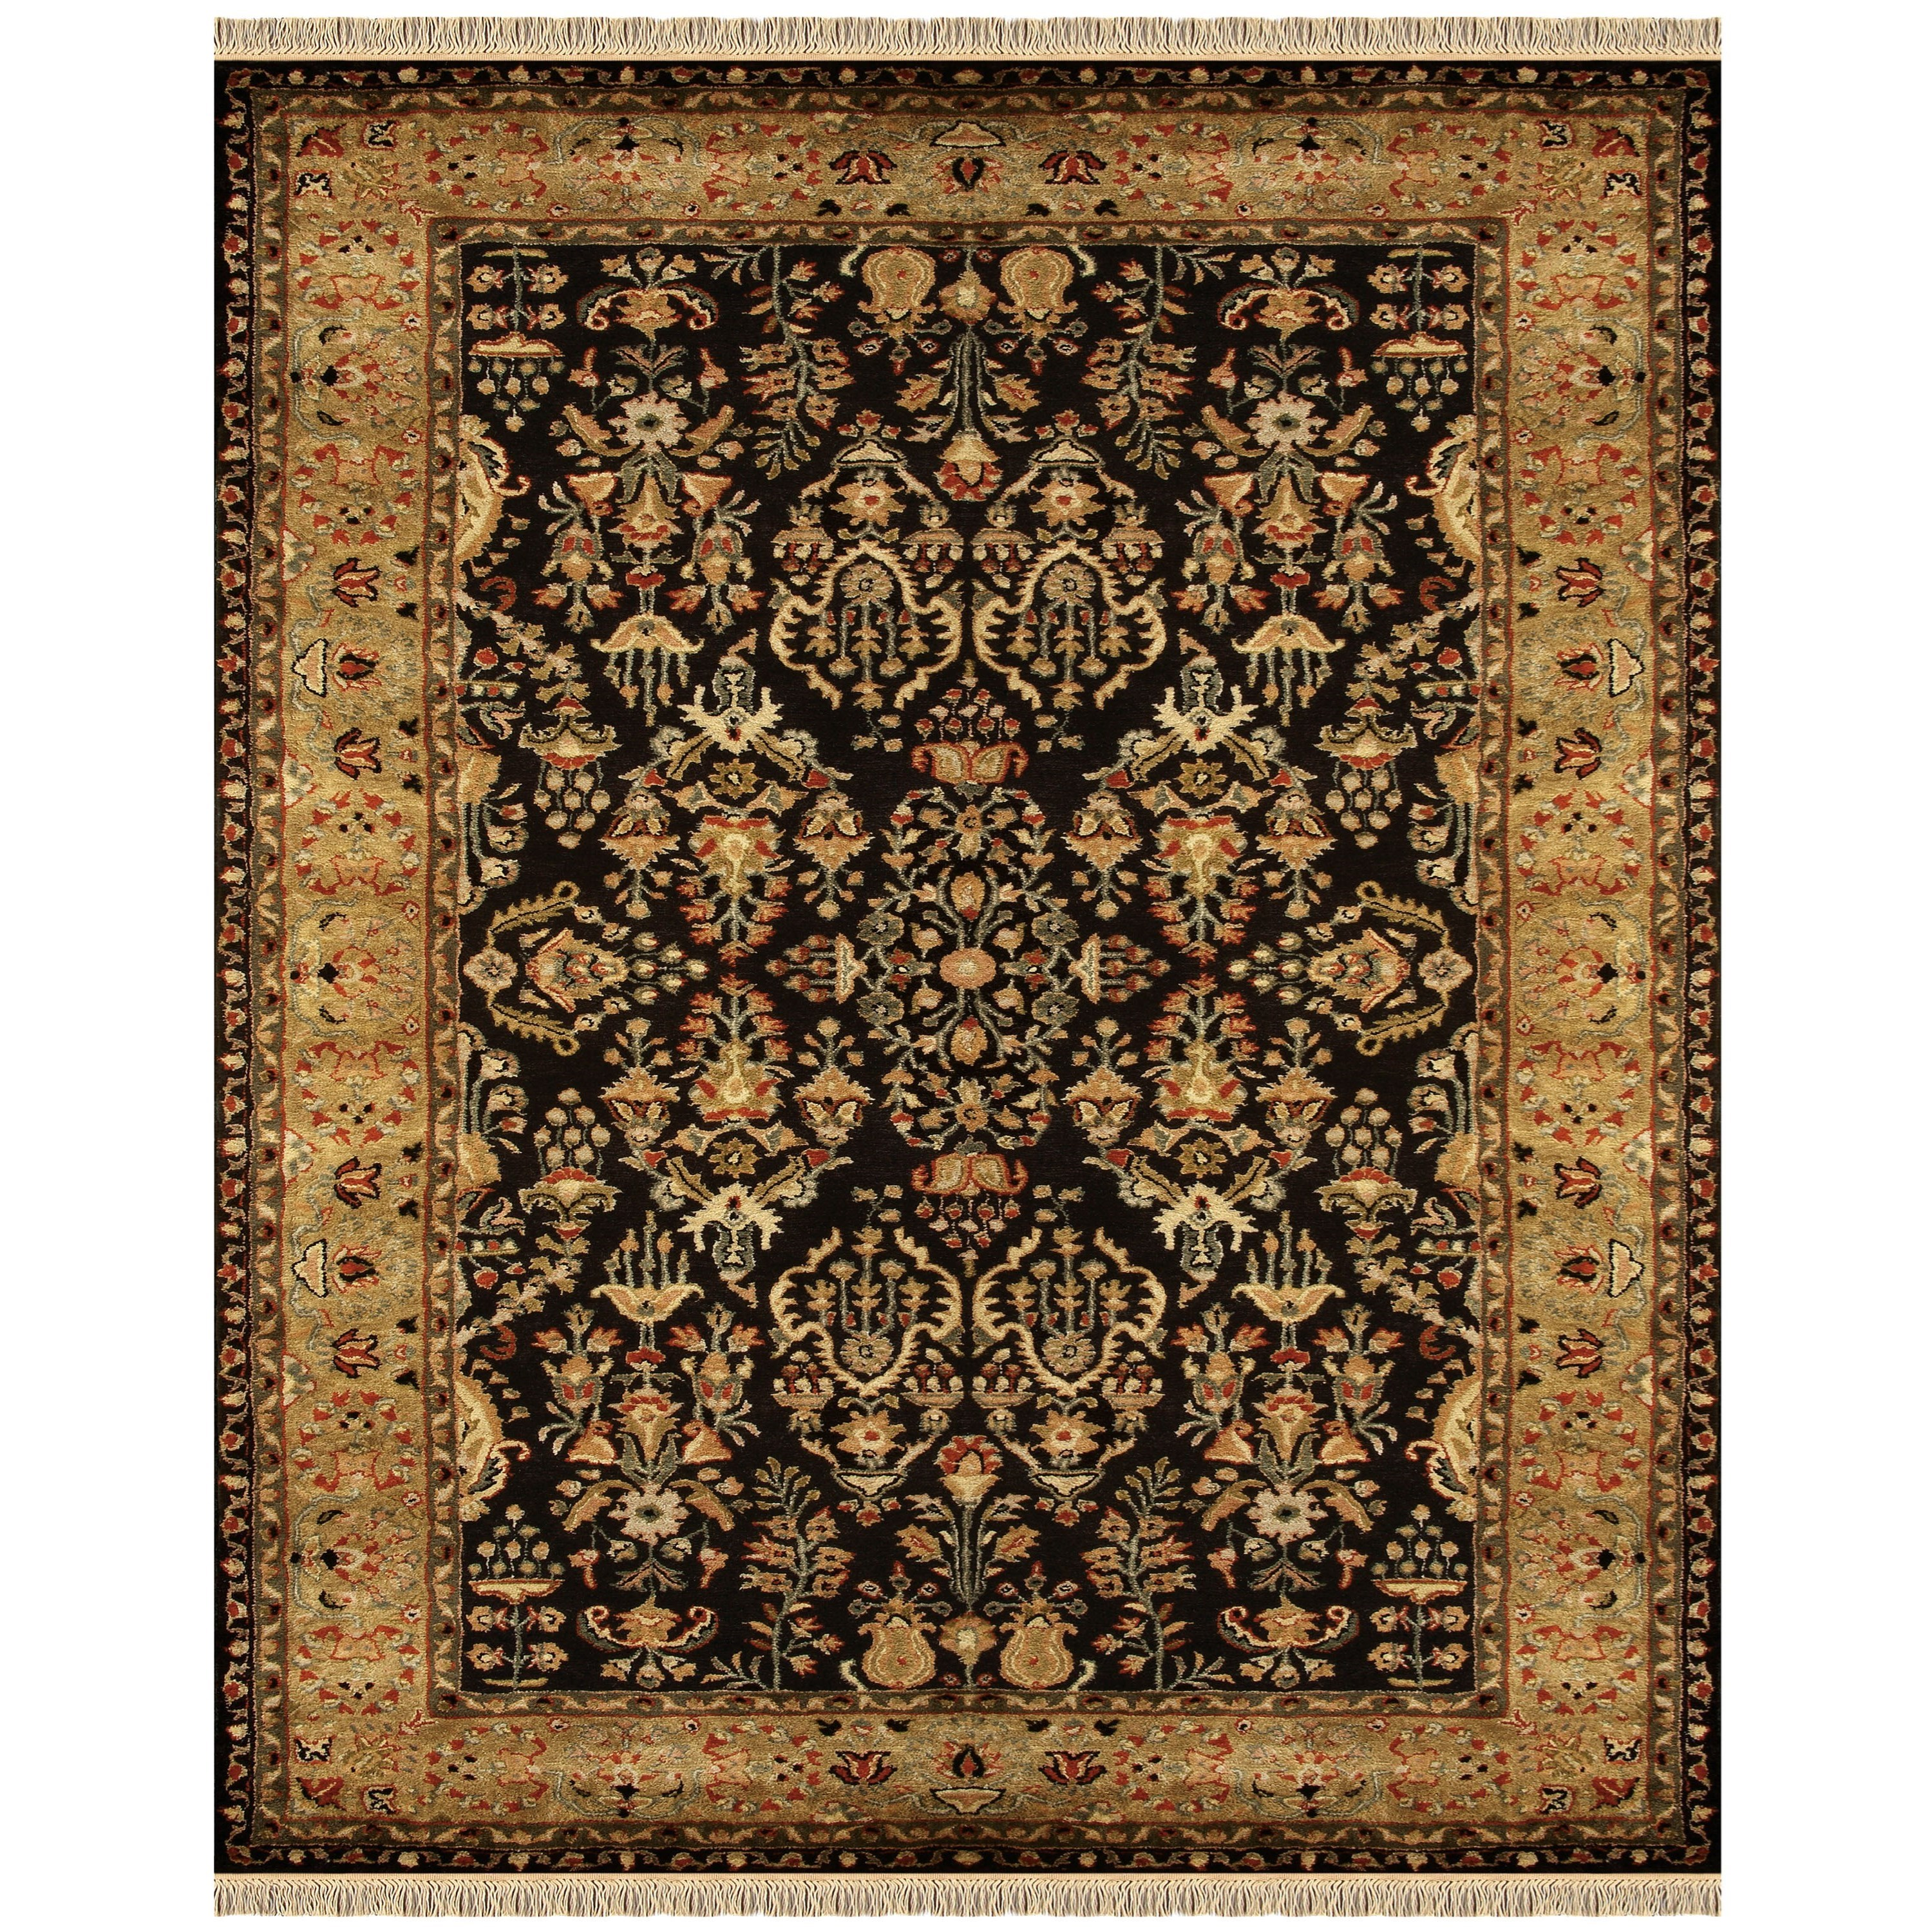 Amore Black/Gold 2' x 3' Area Rug by Feizy Rugs at Sprintz Furniture